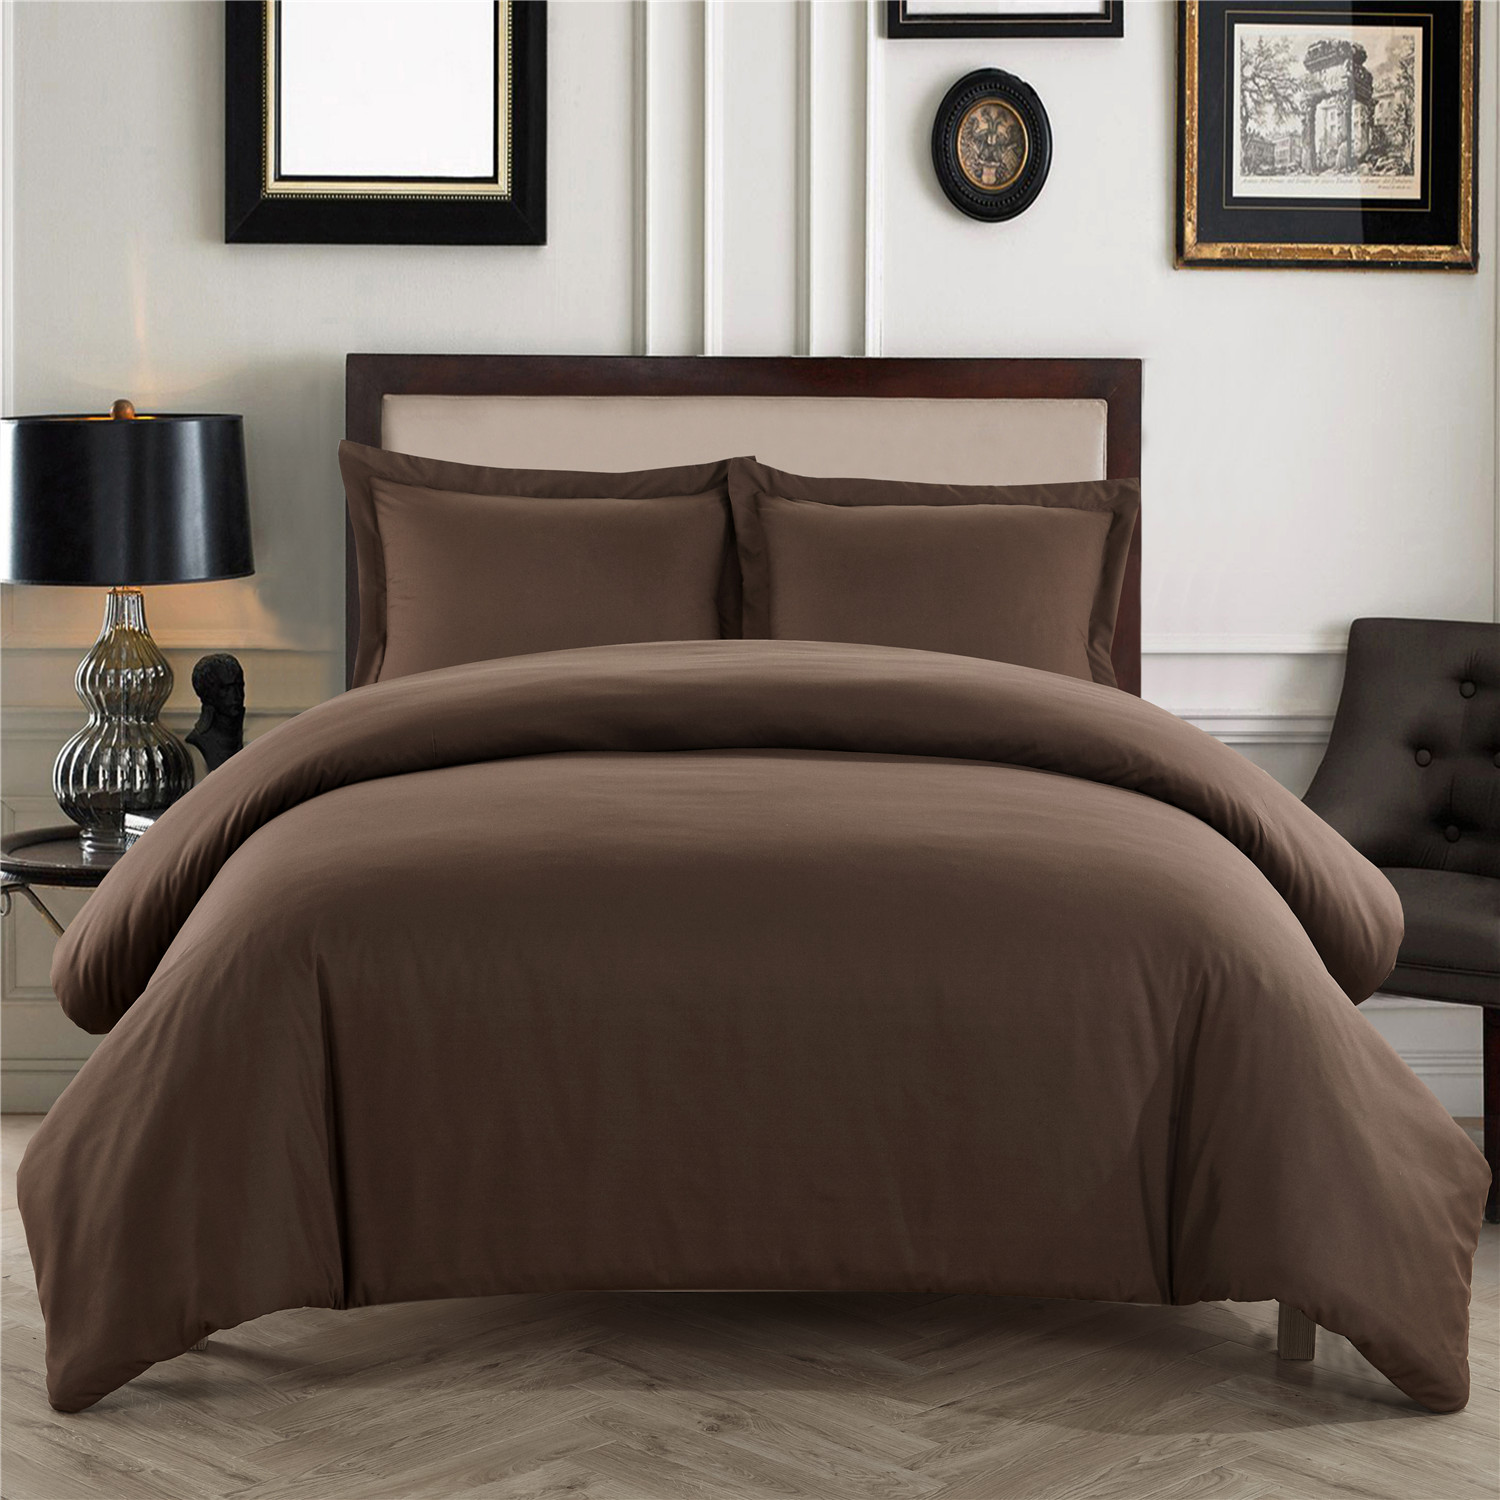 Denisroom Fashion Brown Quilts And Bedding Sets Home Duvet Cover Double Bed Coverlet Twins Comforters XY67#